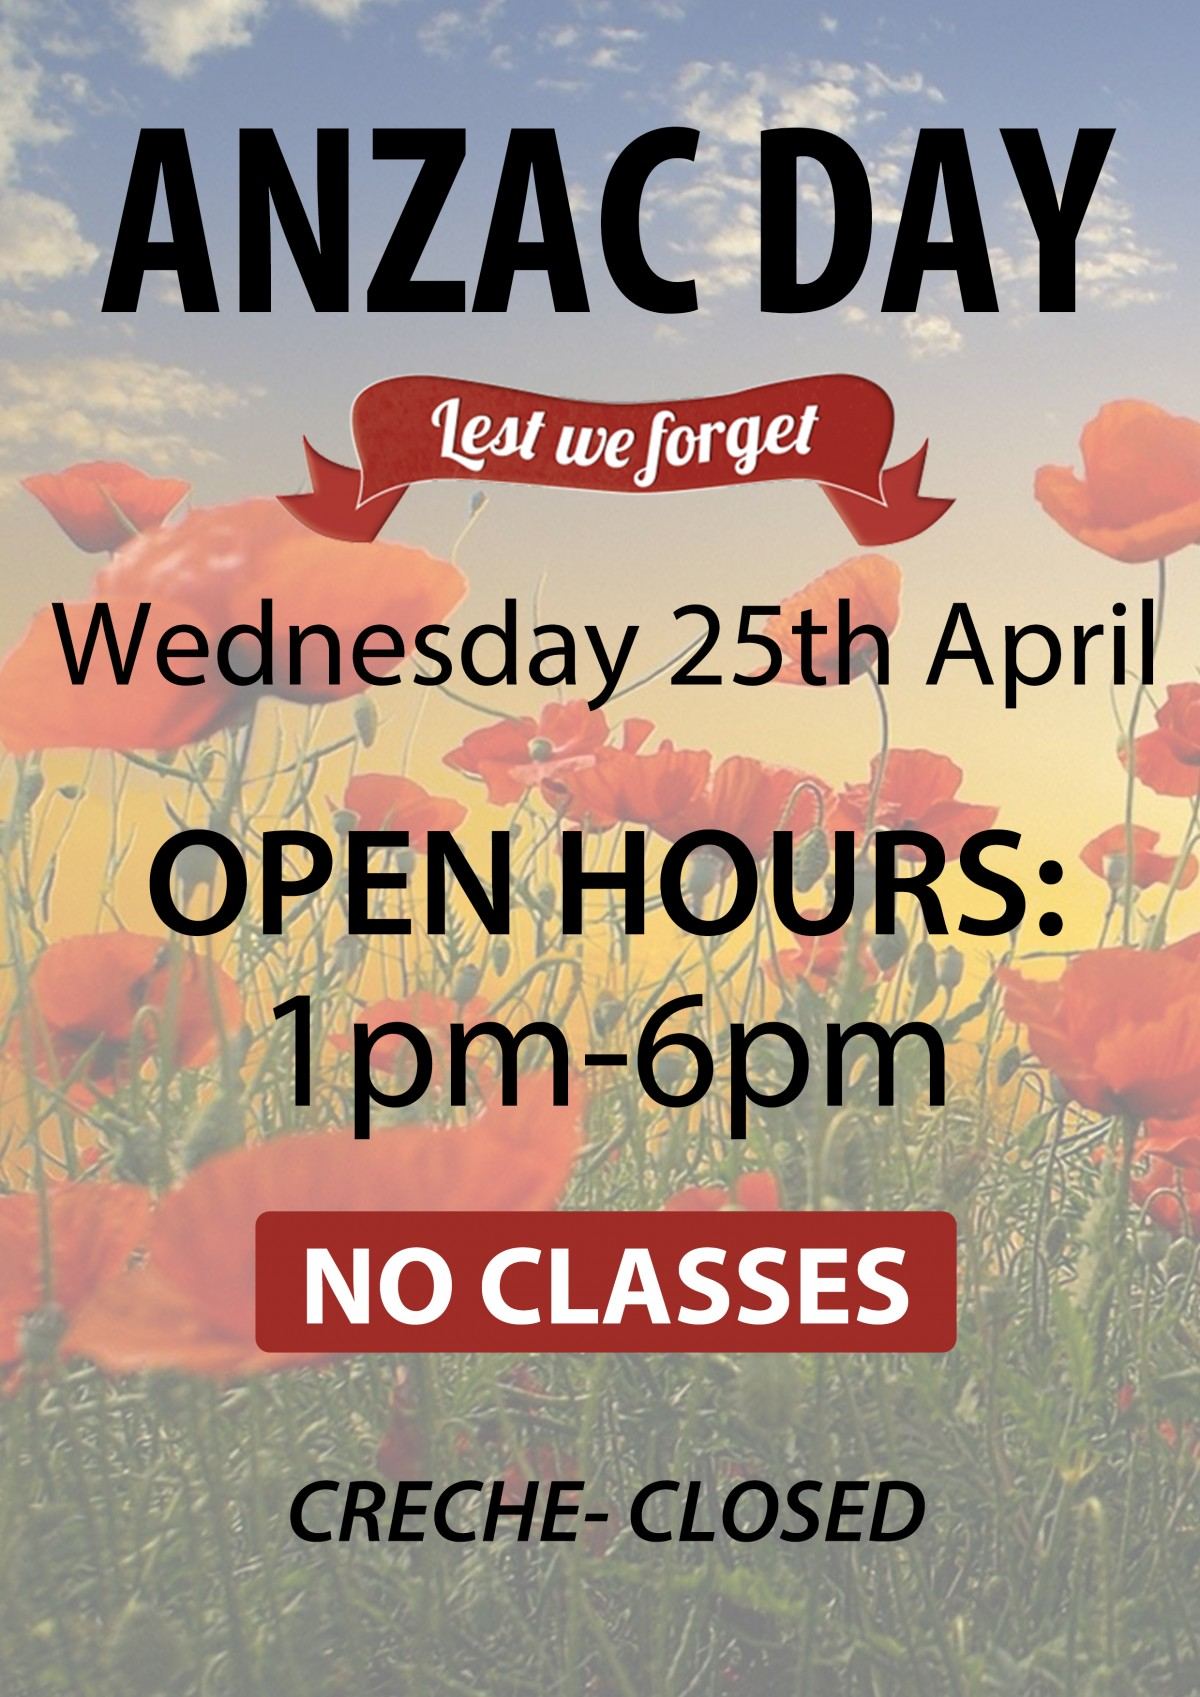 ANZAC DAY HOURS 2018 Charmy